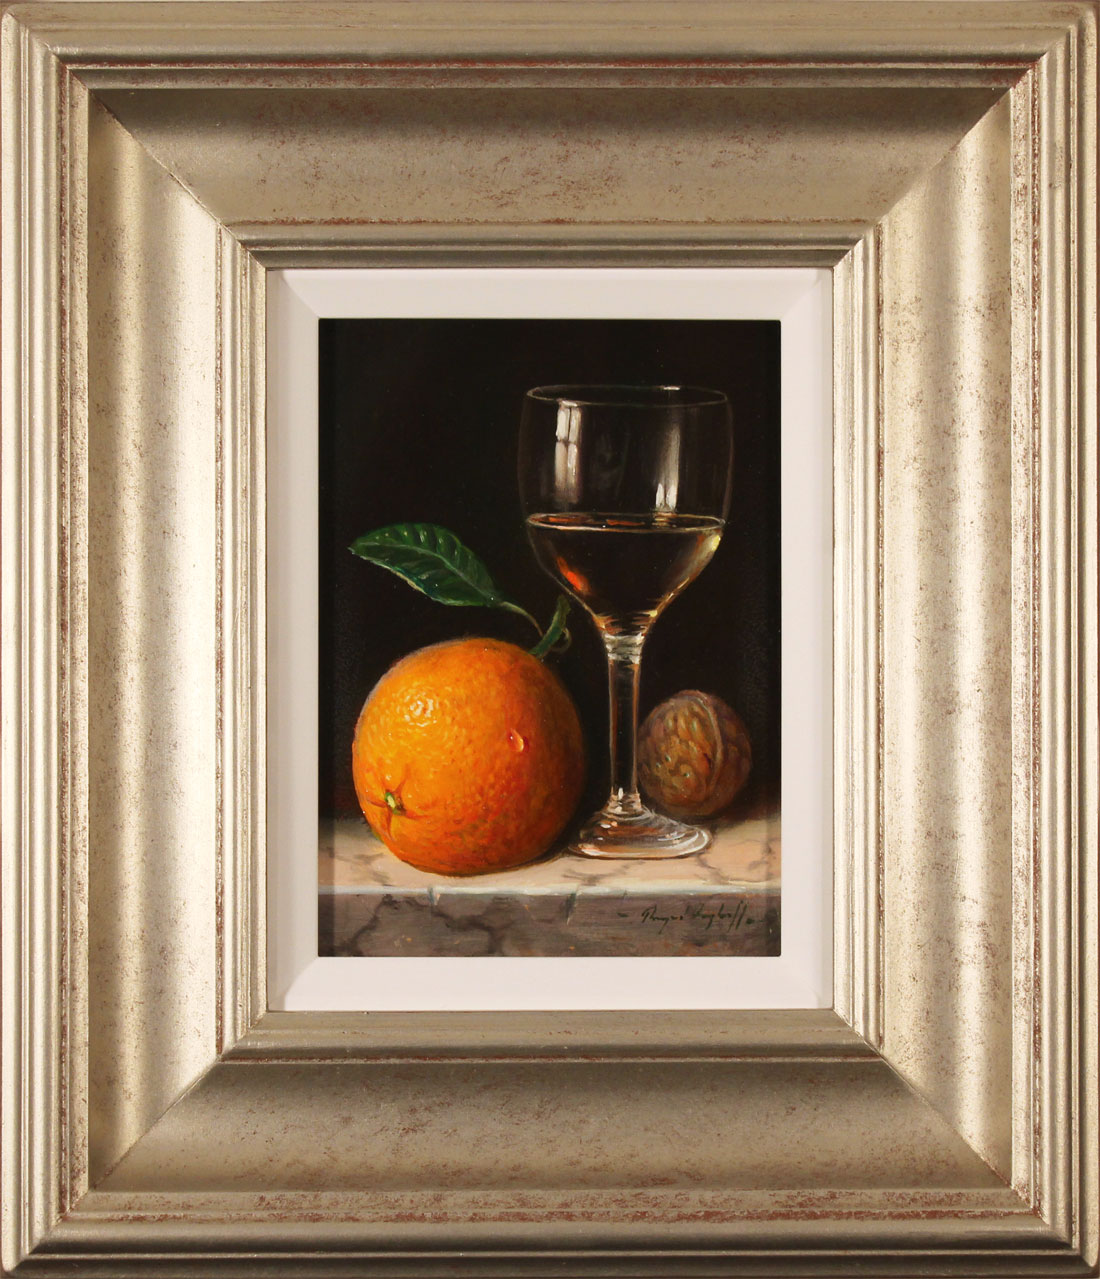 Raymond Campbell, Original oil painting on panel, Notes of Citrus, click to enlarge